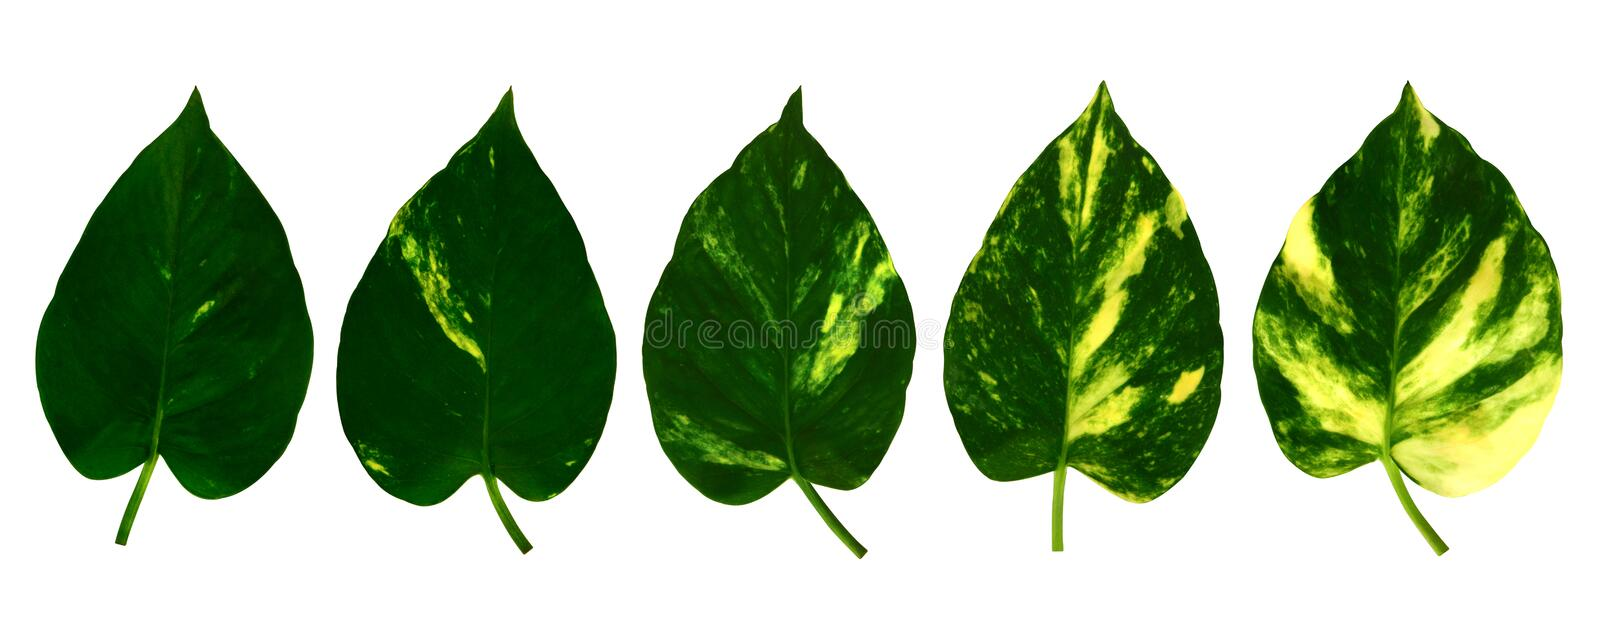 Collection different pattern of golden pothos leaves isolated on white background royalty free stock image